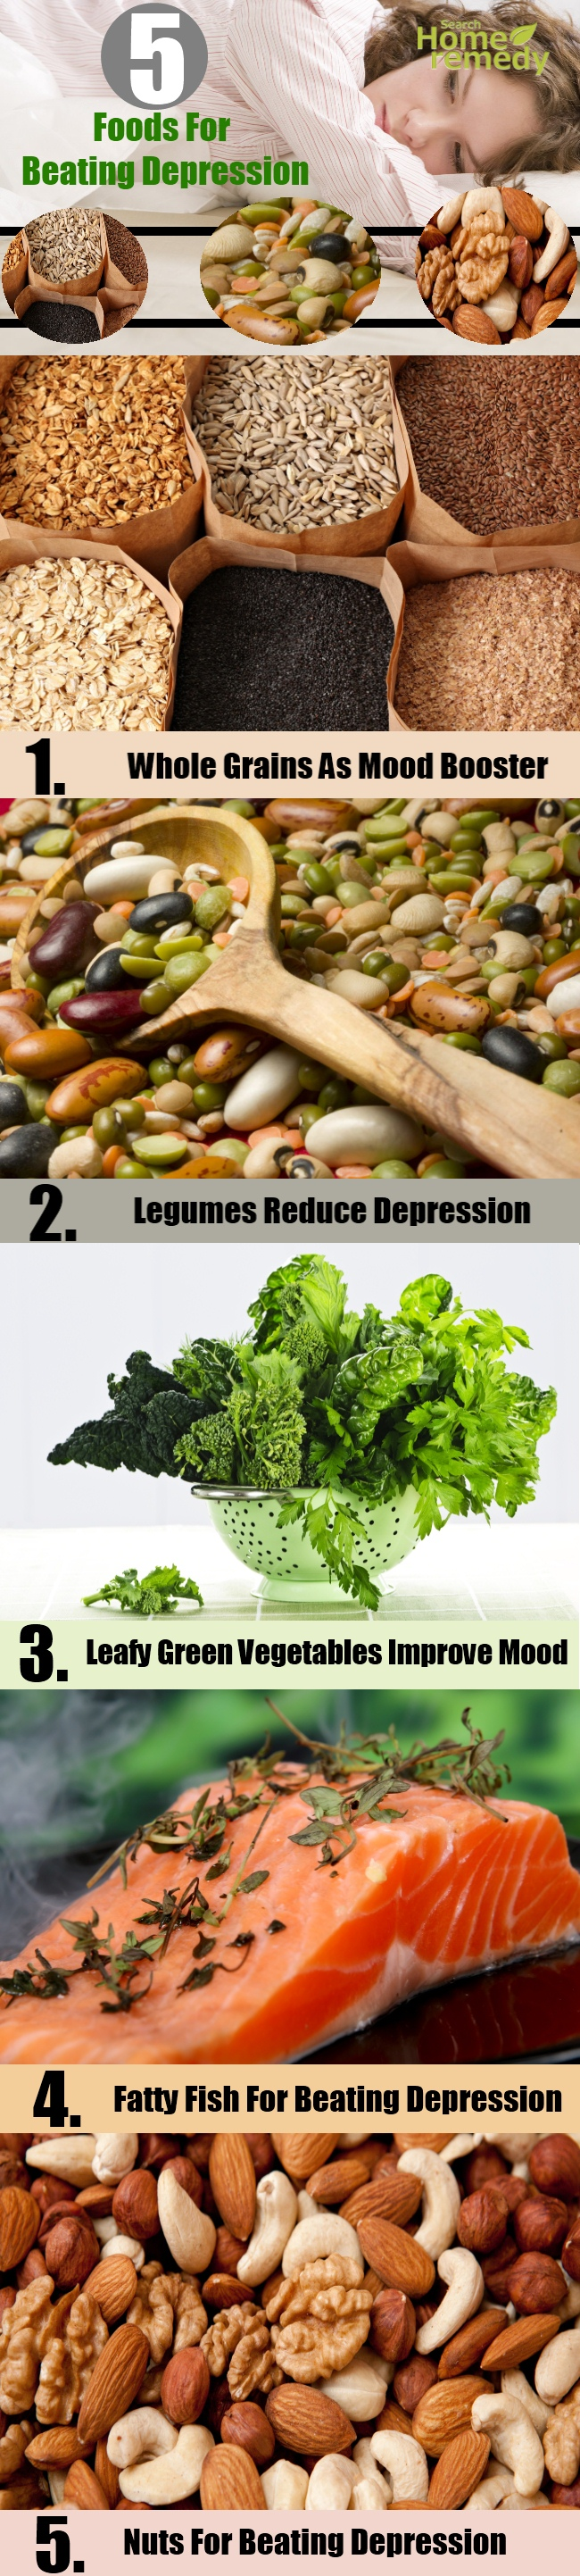 Top 5 Foods For Beating Depression